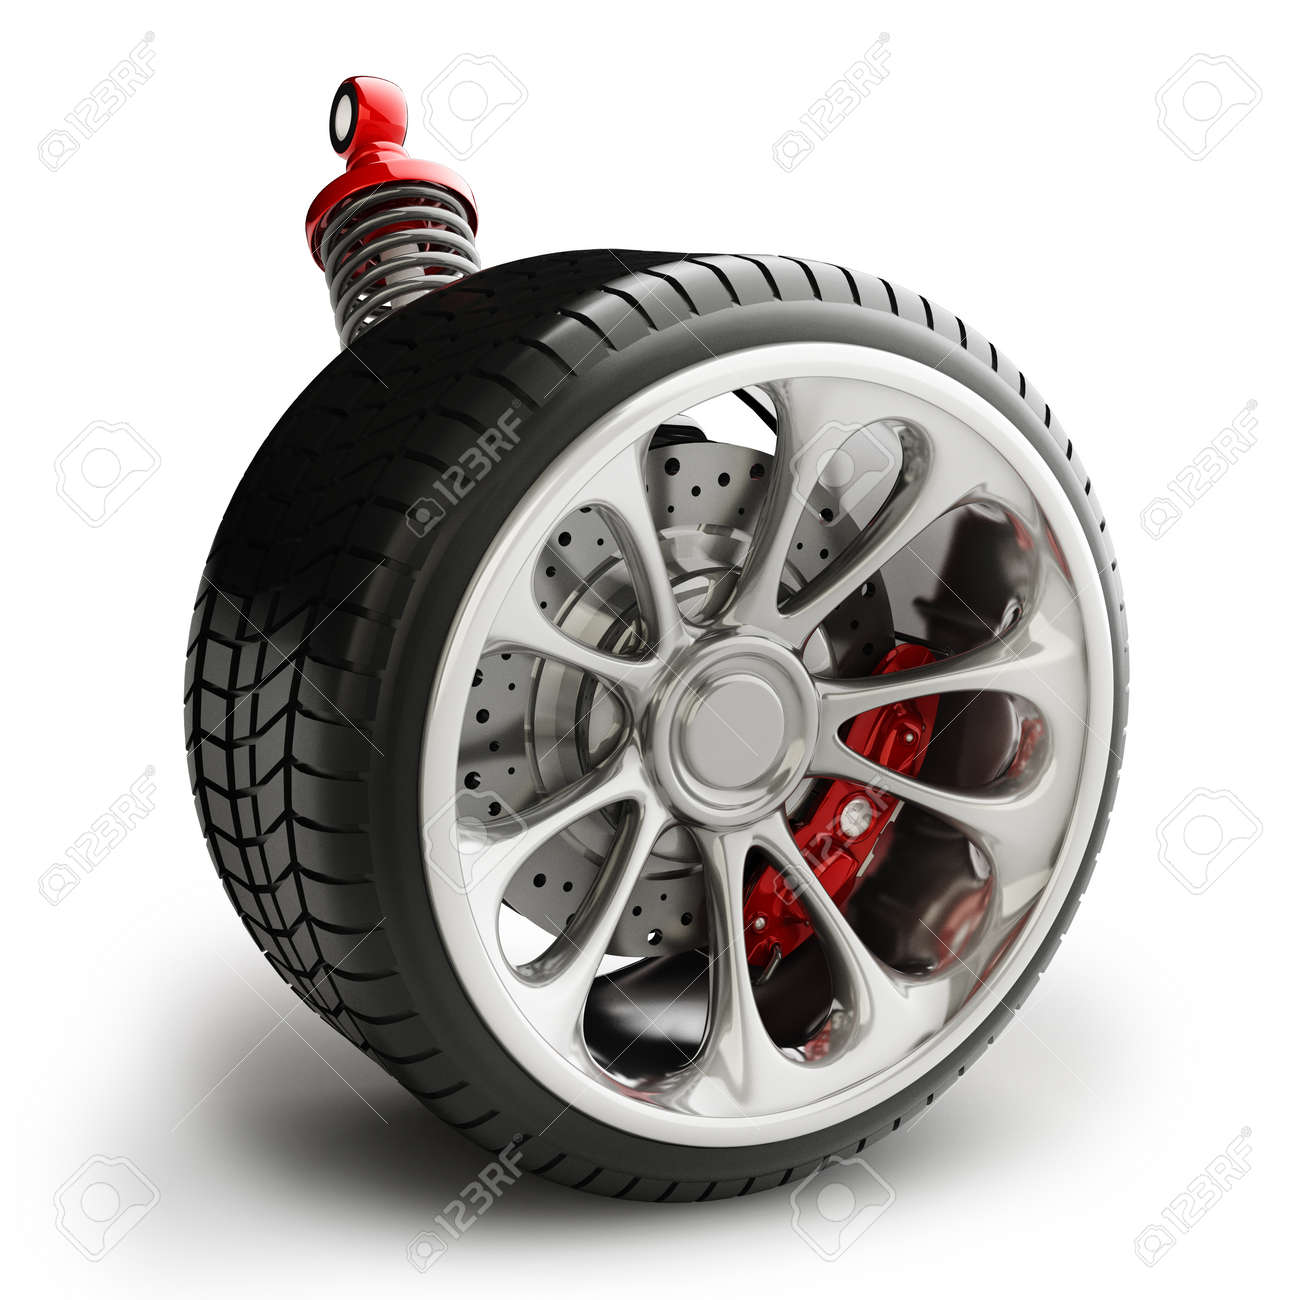 Wheel, shock absorber and brake pads isolated on white background High resolution 3d Stock Photo - 24067468